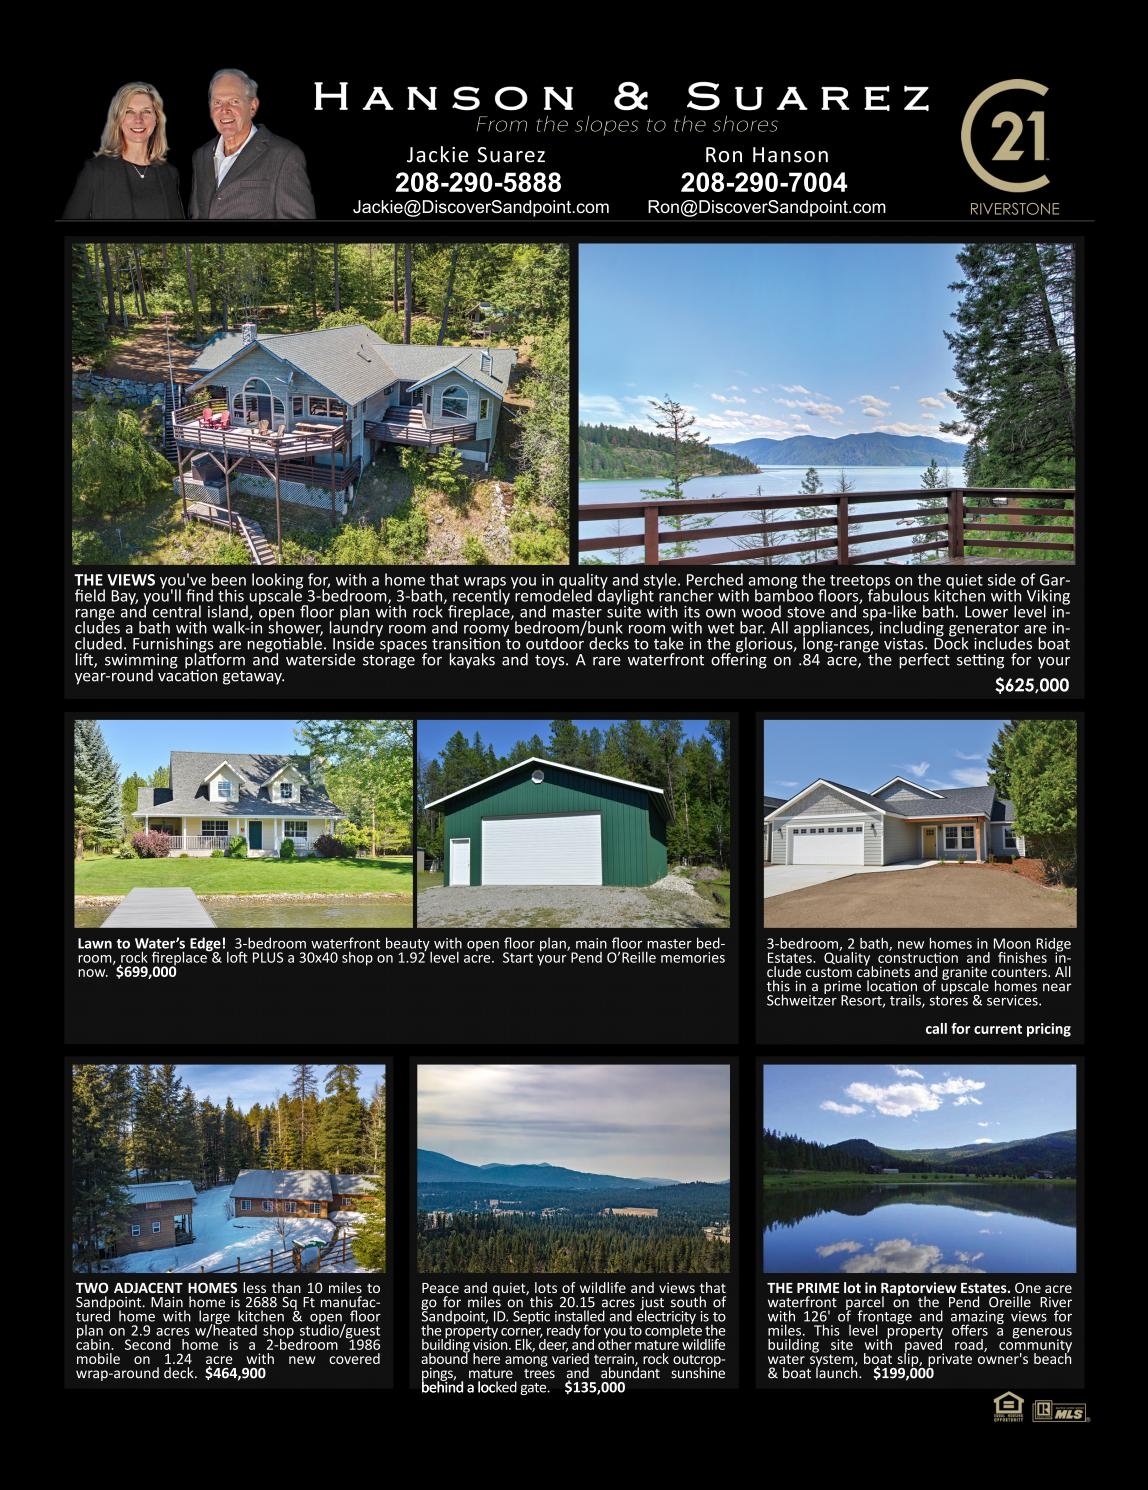 February 2019 Sandpoint Living Local by Living Local 360 - issuu on 40x50 metal building house plans, 36x48 house floor plans, 12x36 house floor plans, 14x30 house floor plans, 50x60 house floor plans, 16x28 house floor plans, 30x32 house floor plans, 35x40 house floor plans, 14x20 house floor plans, 36x36 house floor plans, 1 bedroom house plans, 20x24 house floor plans, 30 x 40 building plans, small house floor plans, 12x20 house floor plans, 32x48 house floor plans, 30 40 house floor plans, 30x20 house floor plans, 1 bedroom cabin floor plans, 30x30 house floor plans,